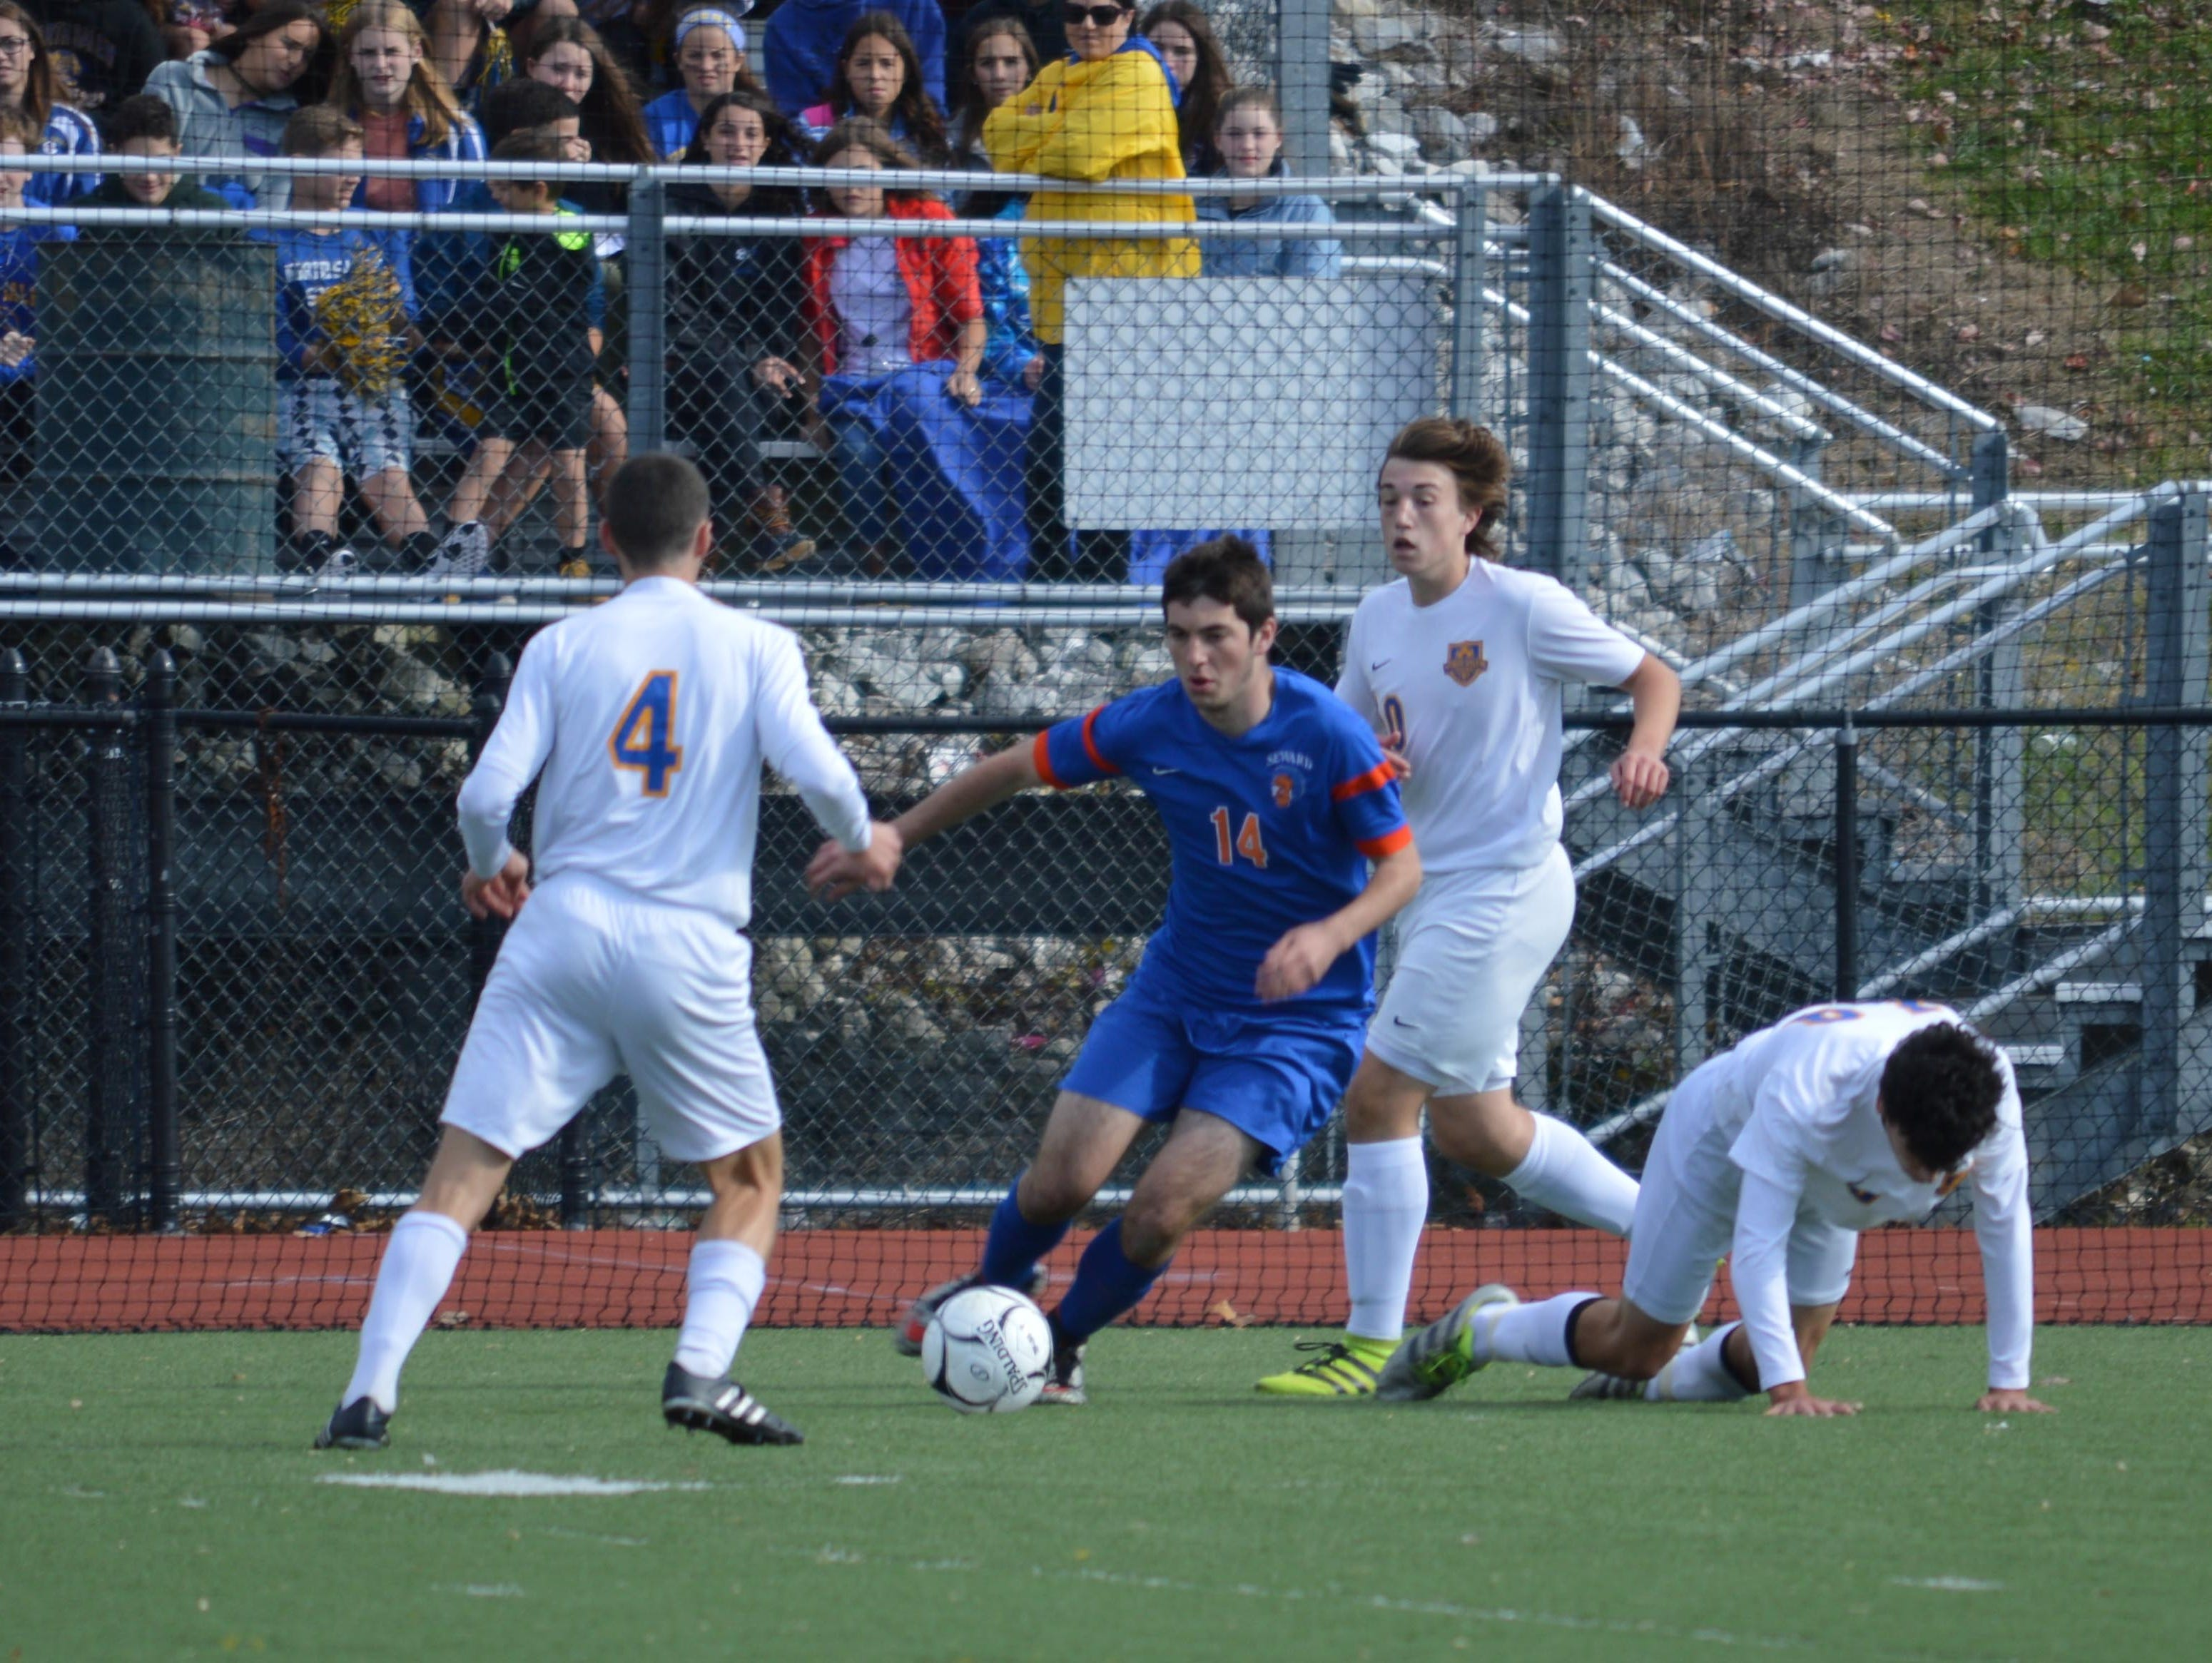 Seward's Jack Gardiner attempts to play the ball around North Salem's Michael Selzer (4), John Martabano (standing) and Mark Ribaudo (on knees) during the Class C Regional Game at Byram Hills High School on Nov. 5, 2016.